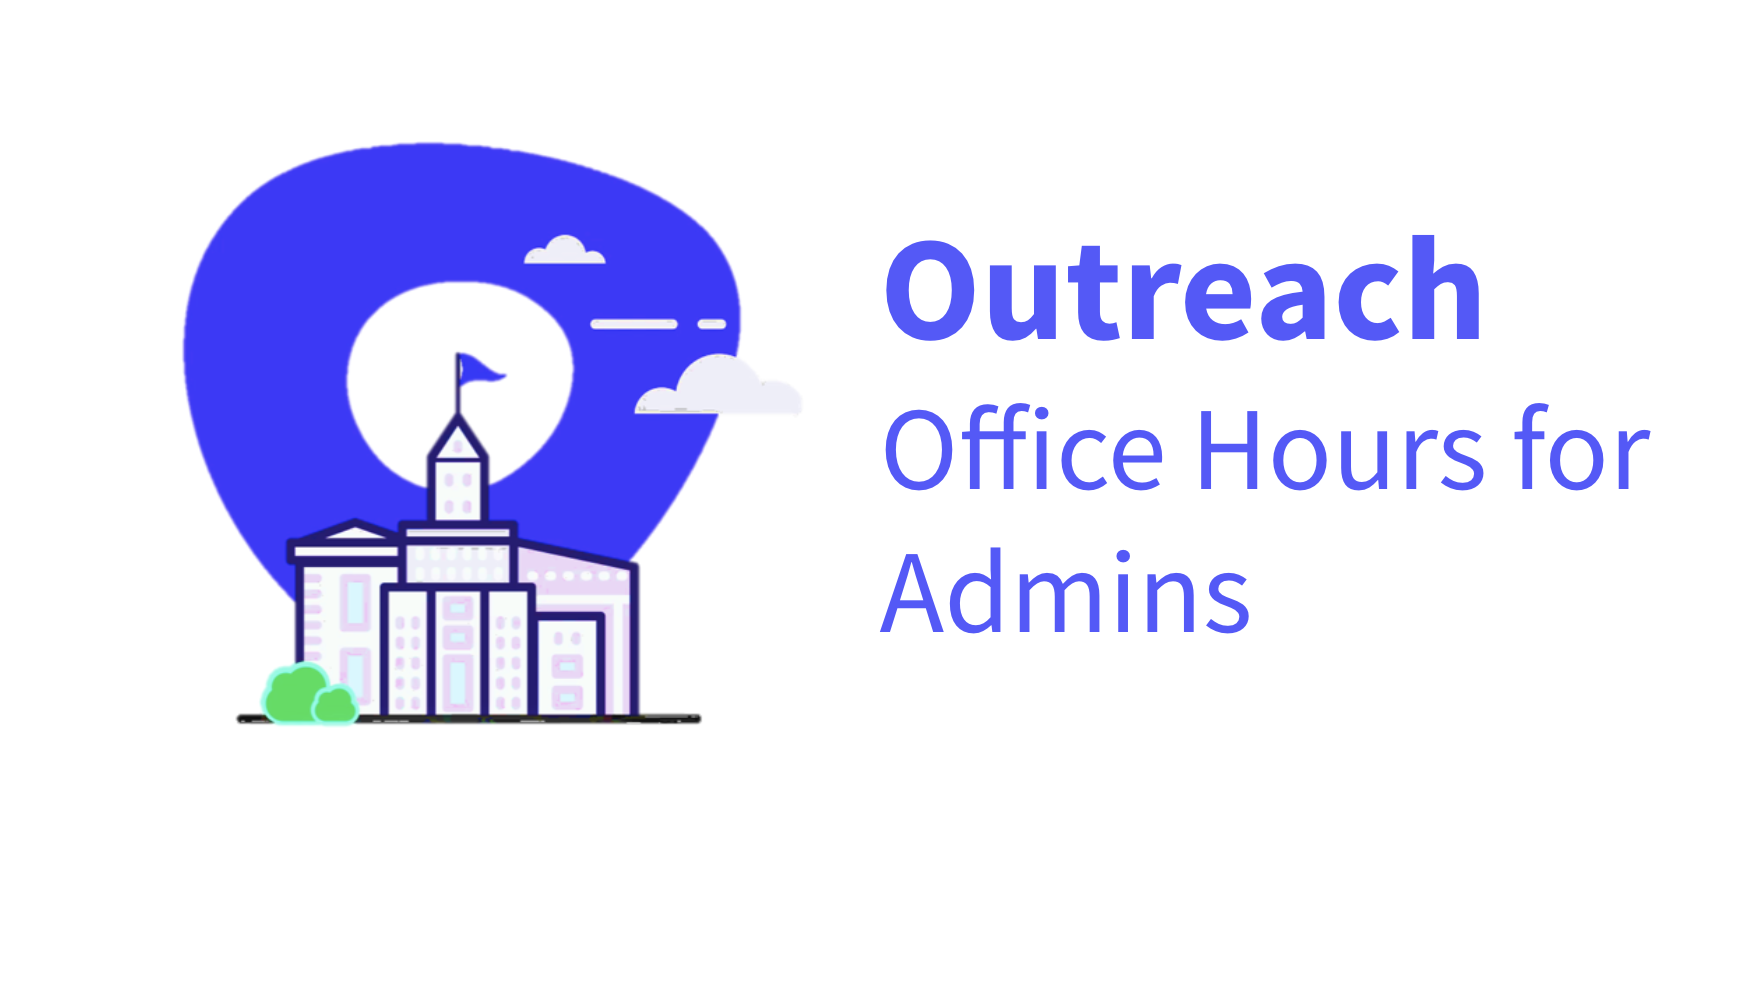 Office Hours for Admins